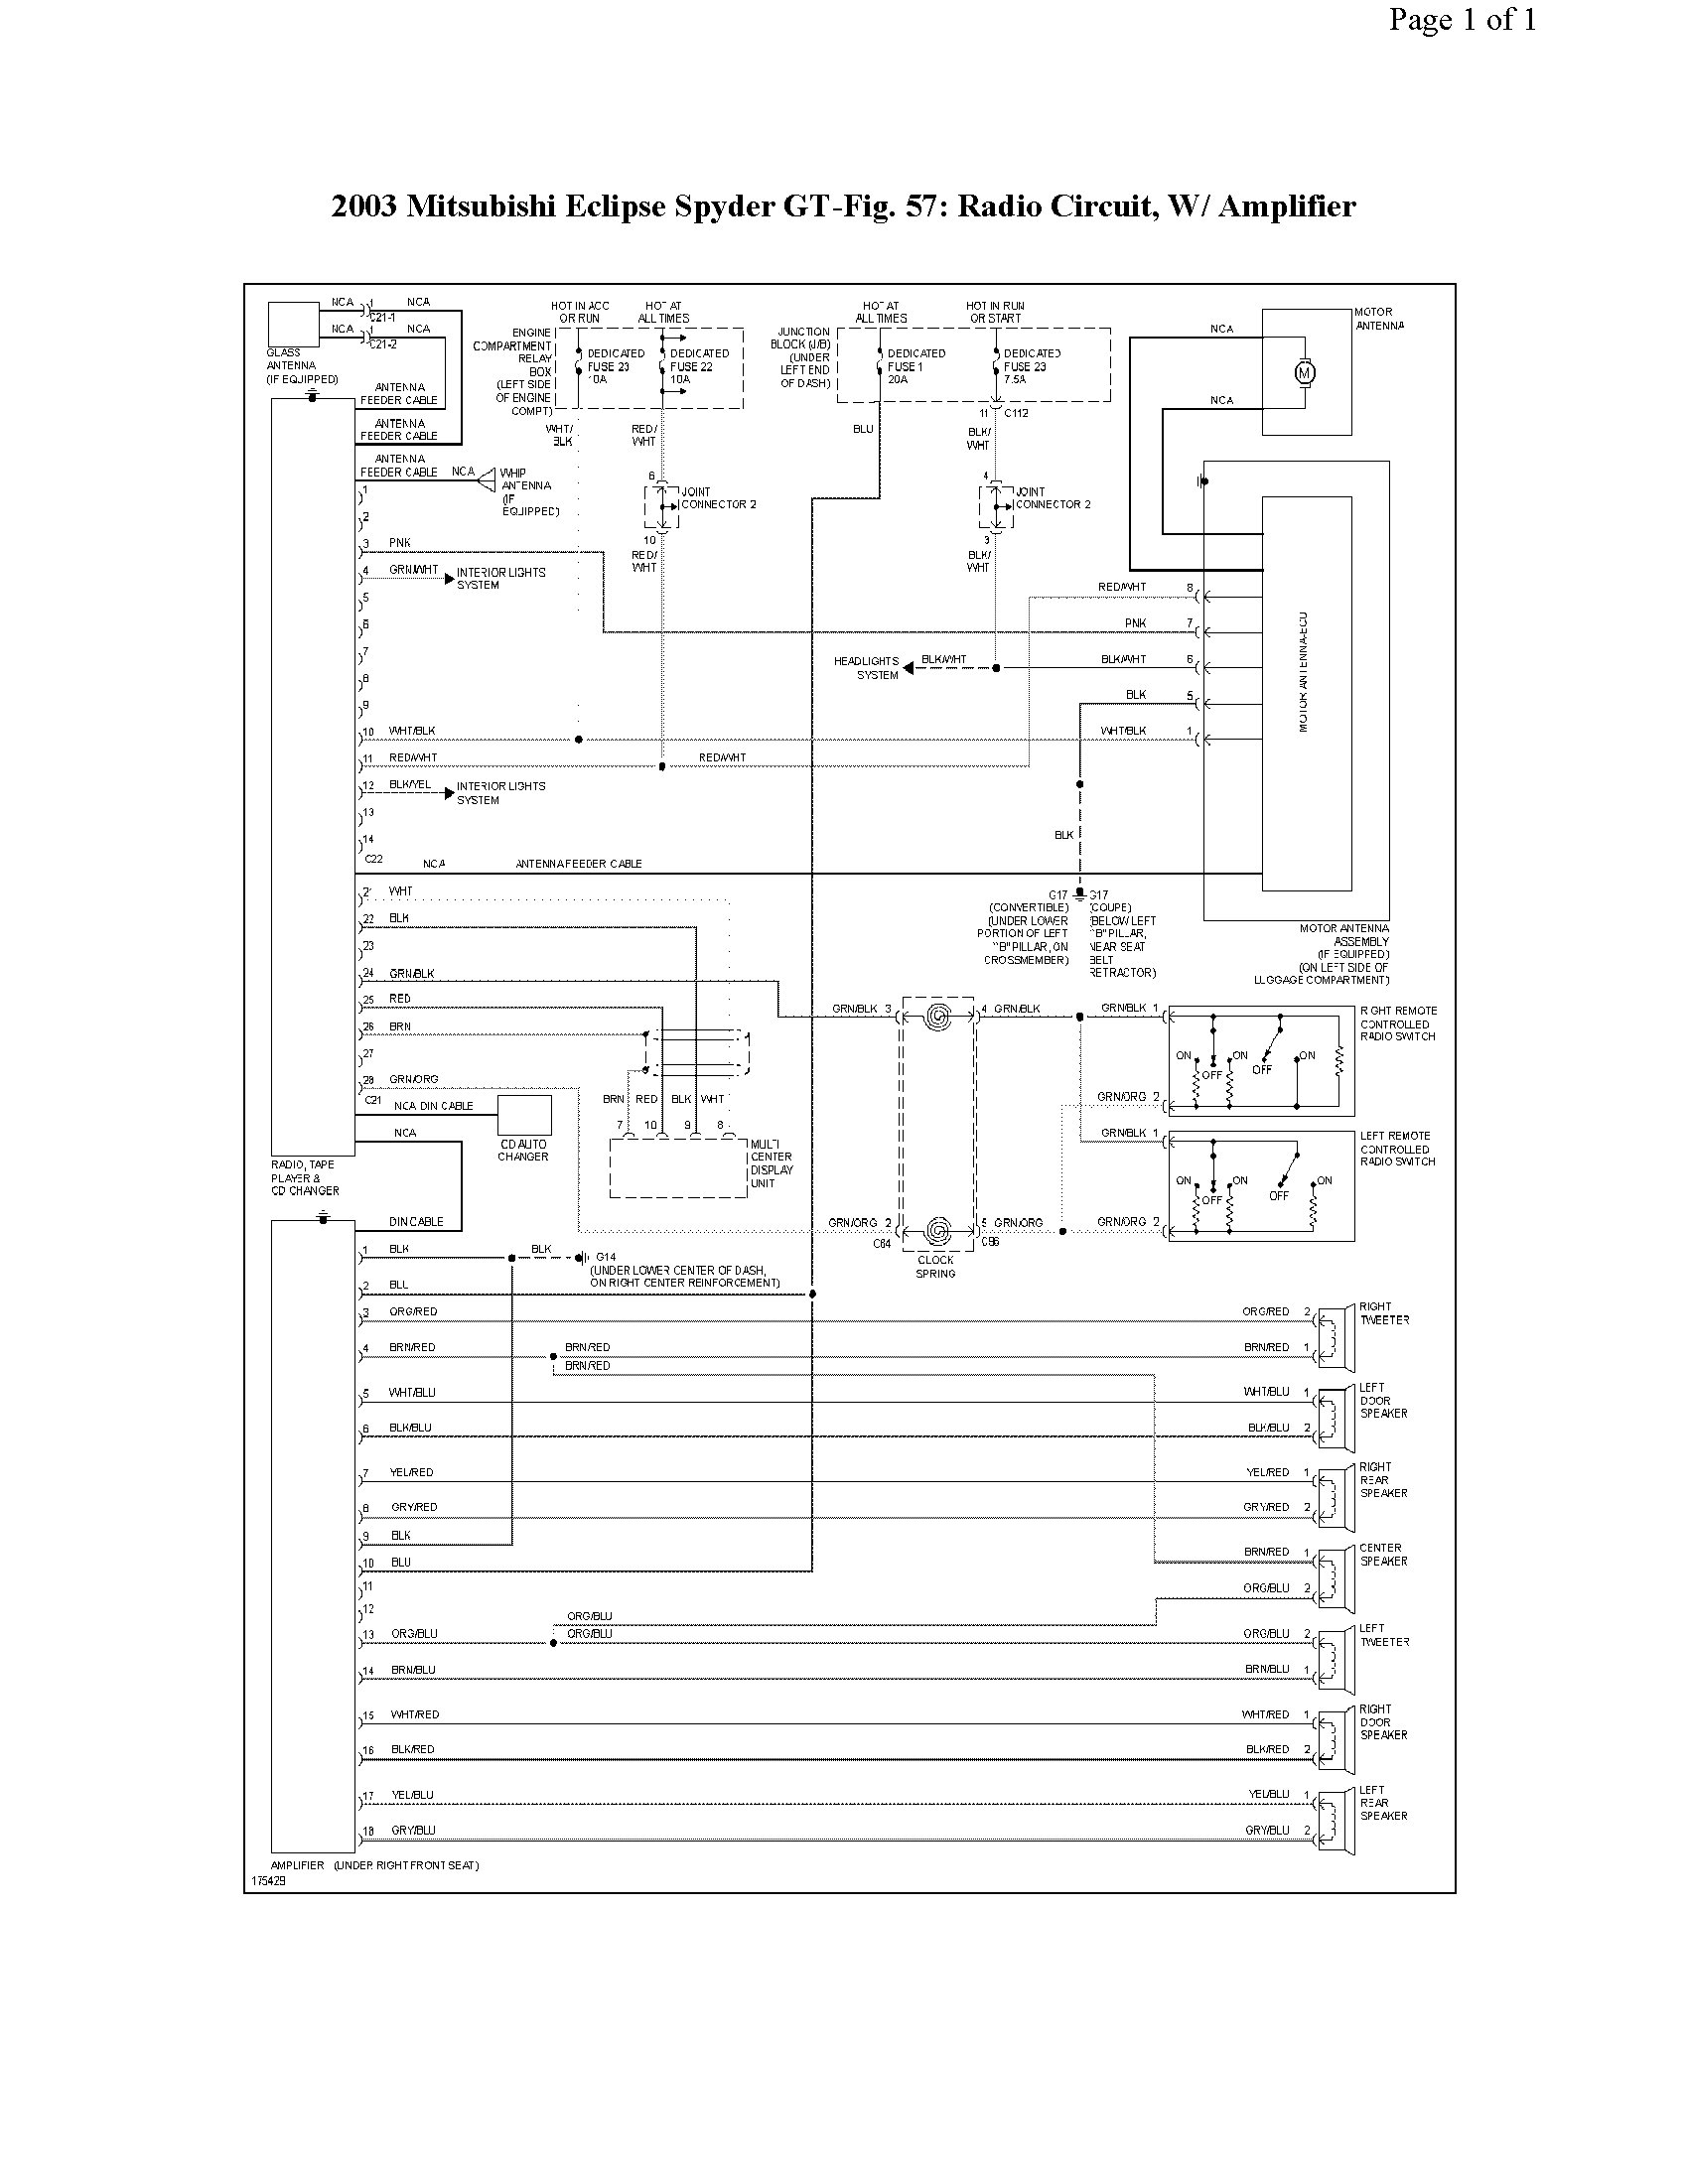 2010 03 16_003830_radiao_w_amp 2003 mitsubishi eclipse radio wiring diagram 2007 mitsubishi  at bayanpartner.co